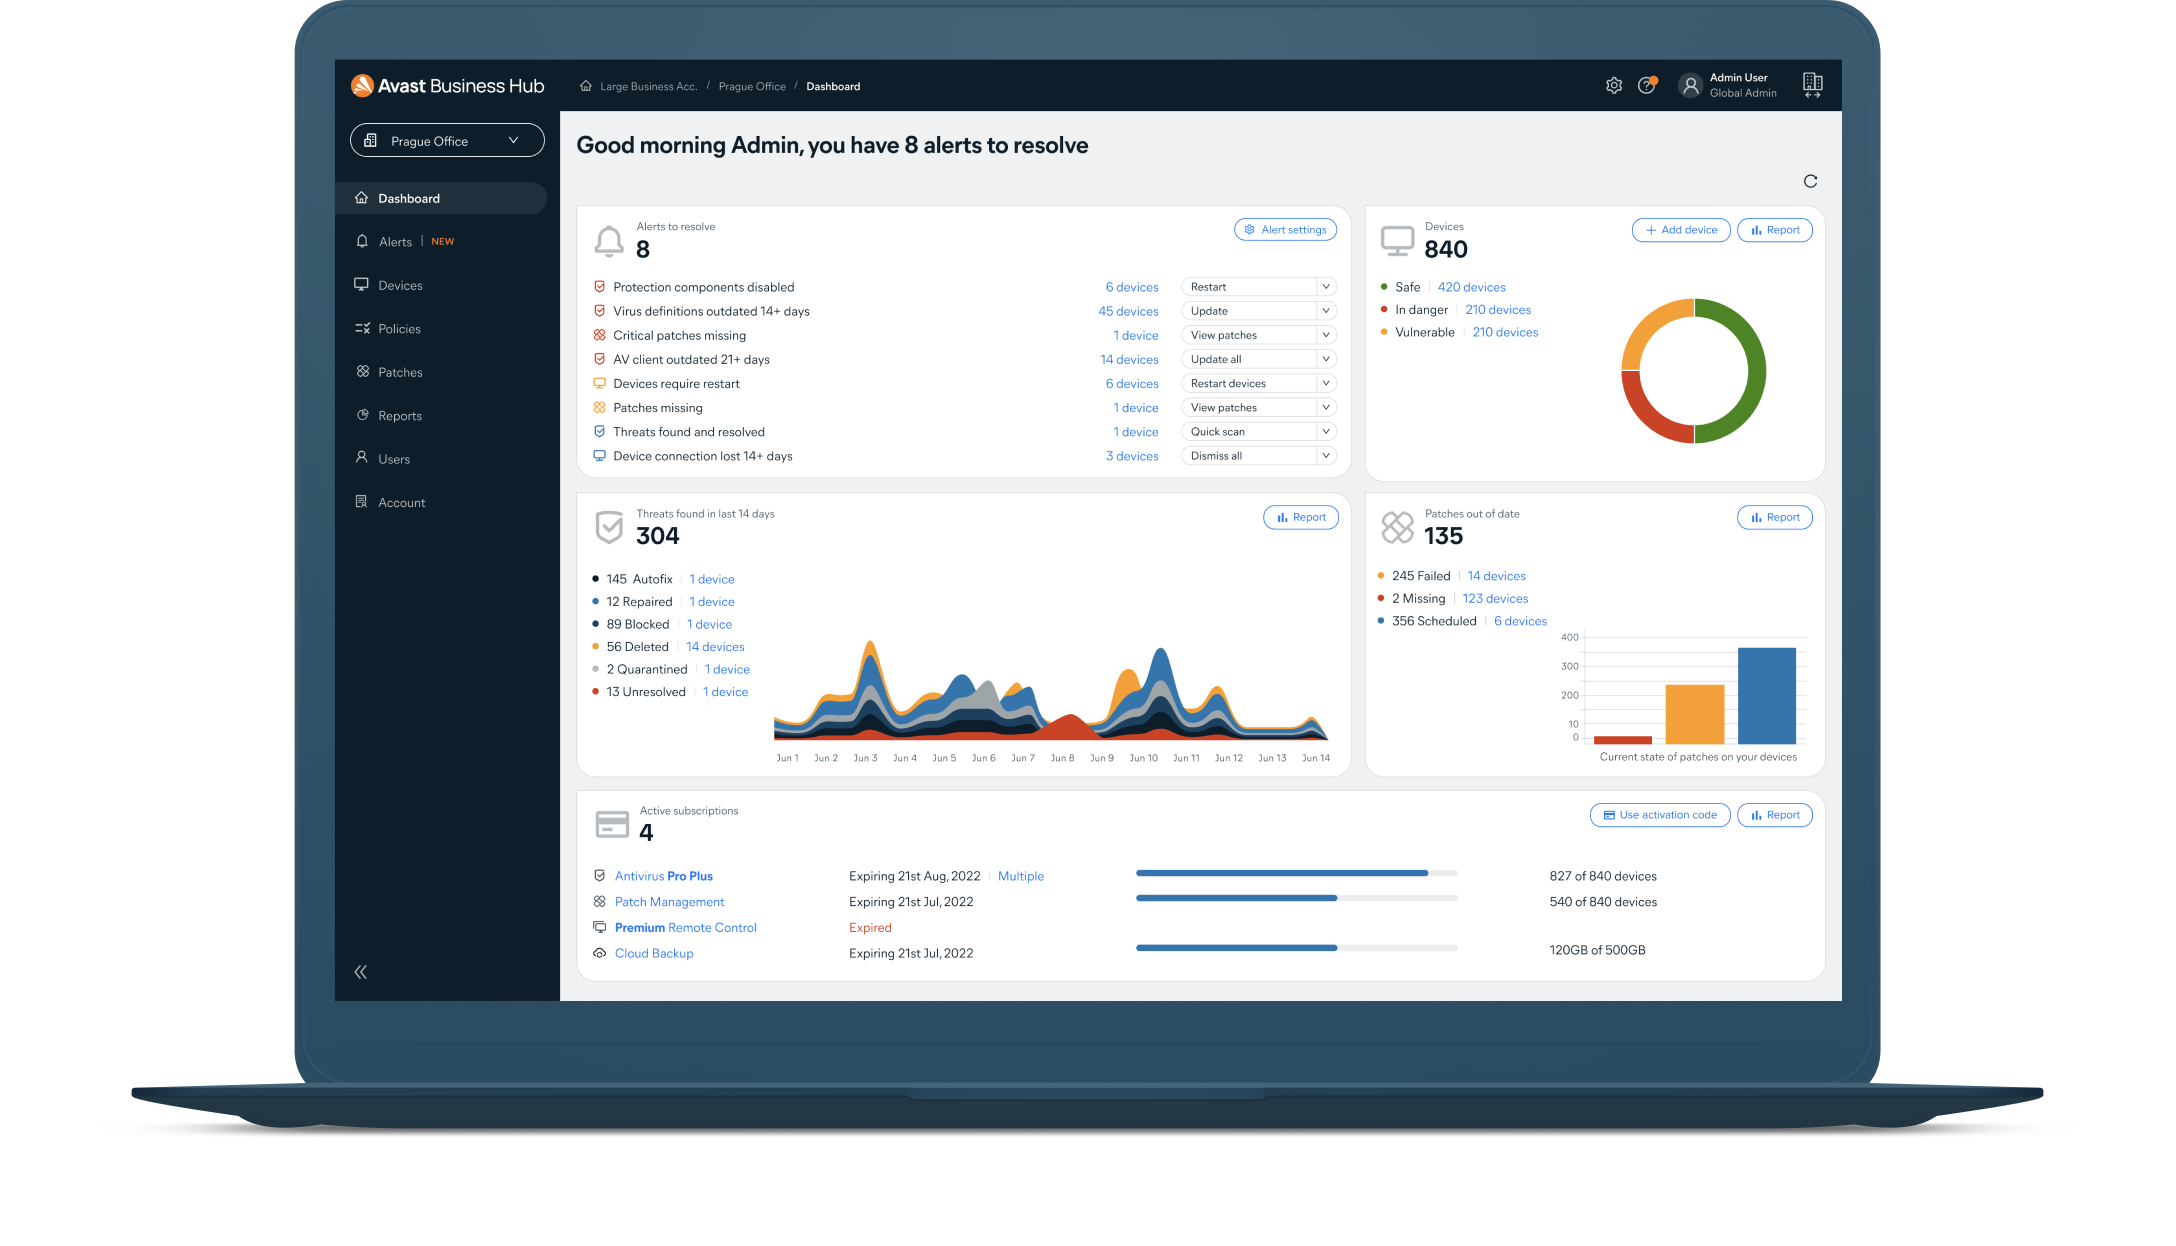 Easily manage all your Avast Business security solutions from one streamlined dashboard.